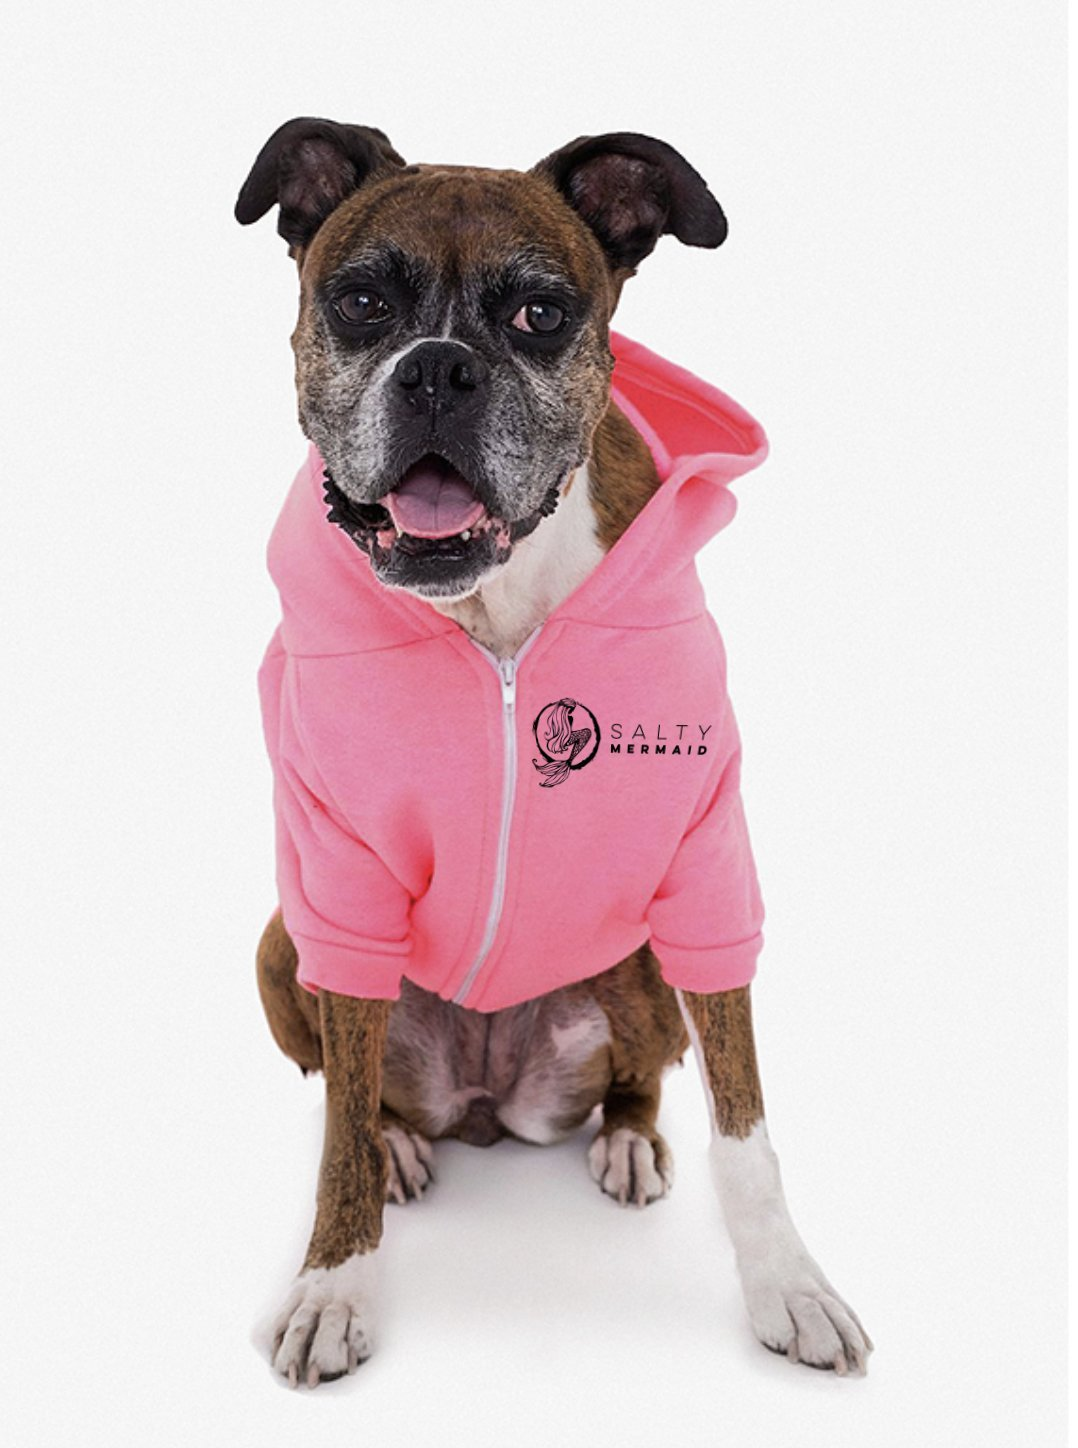 Salty Mermaid Dog Zip Hoodie - Pink - Salty Mermaid Swim